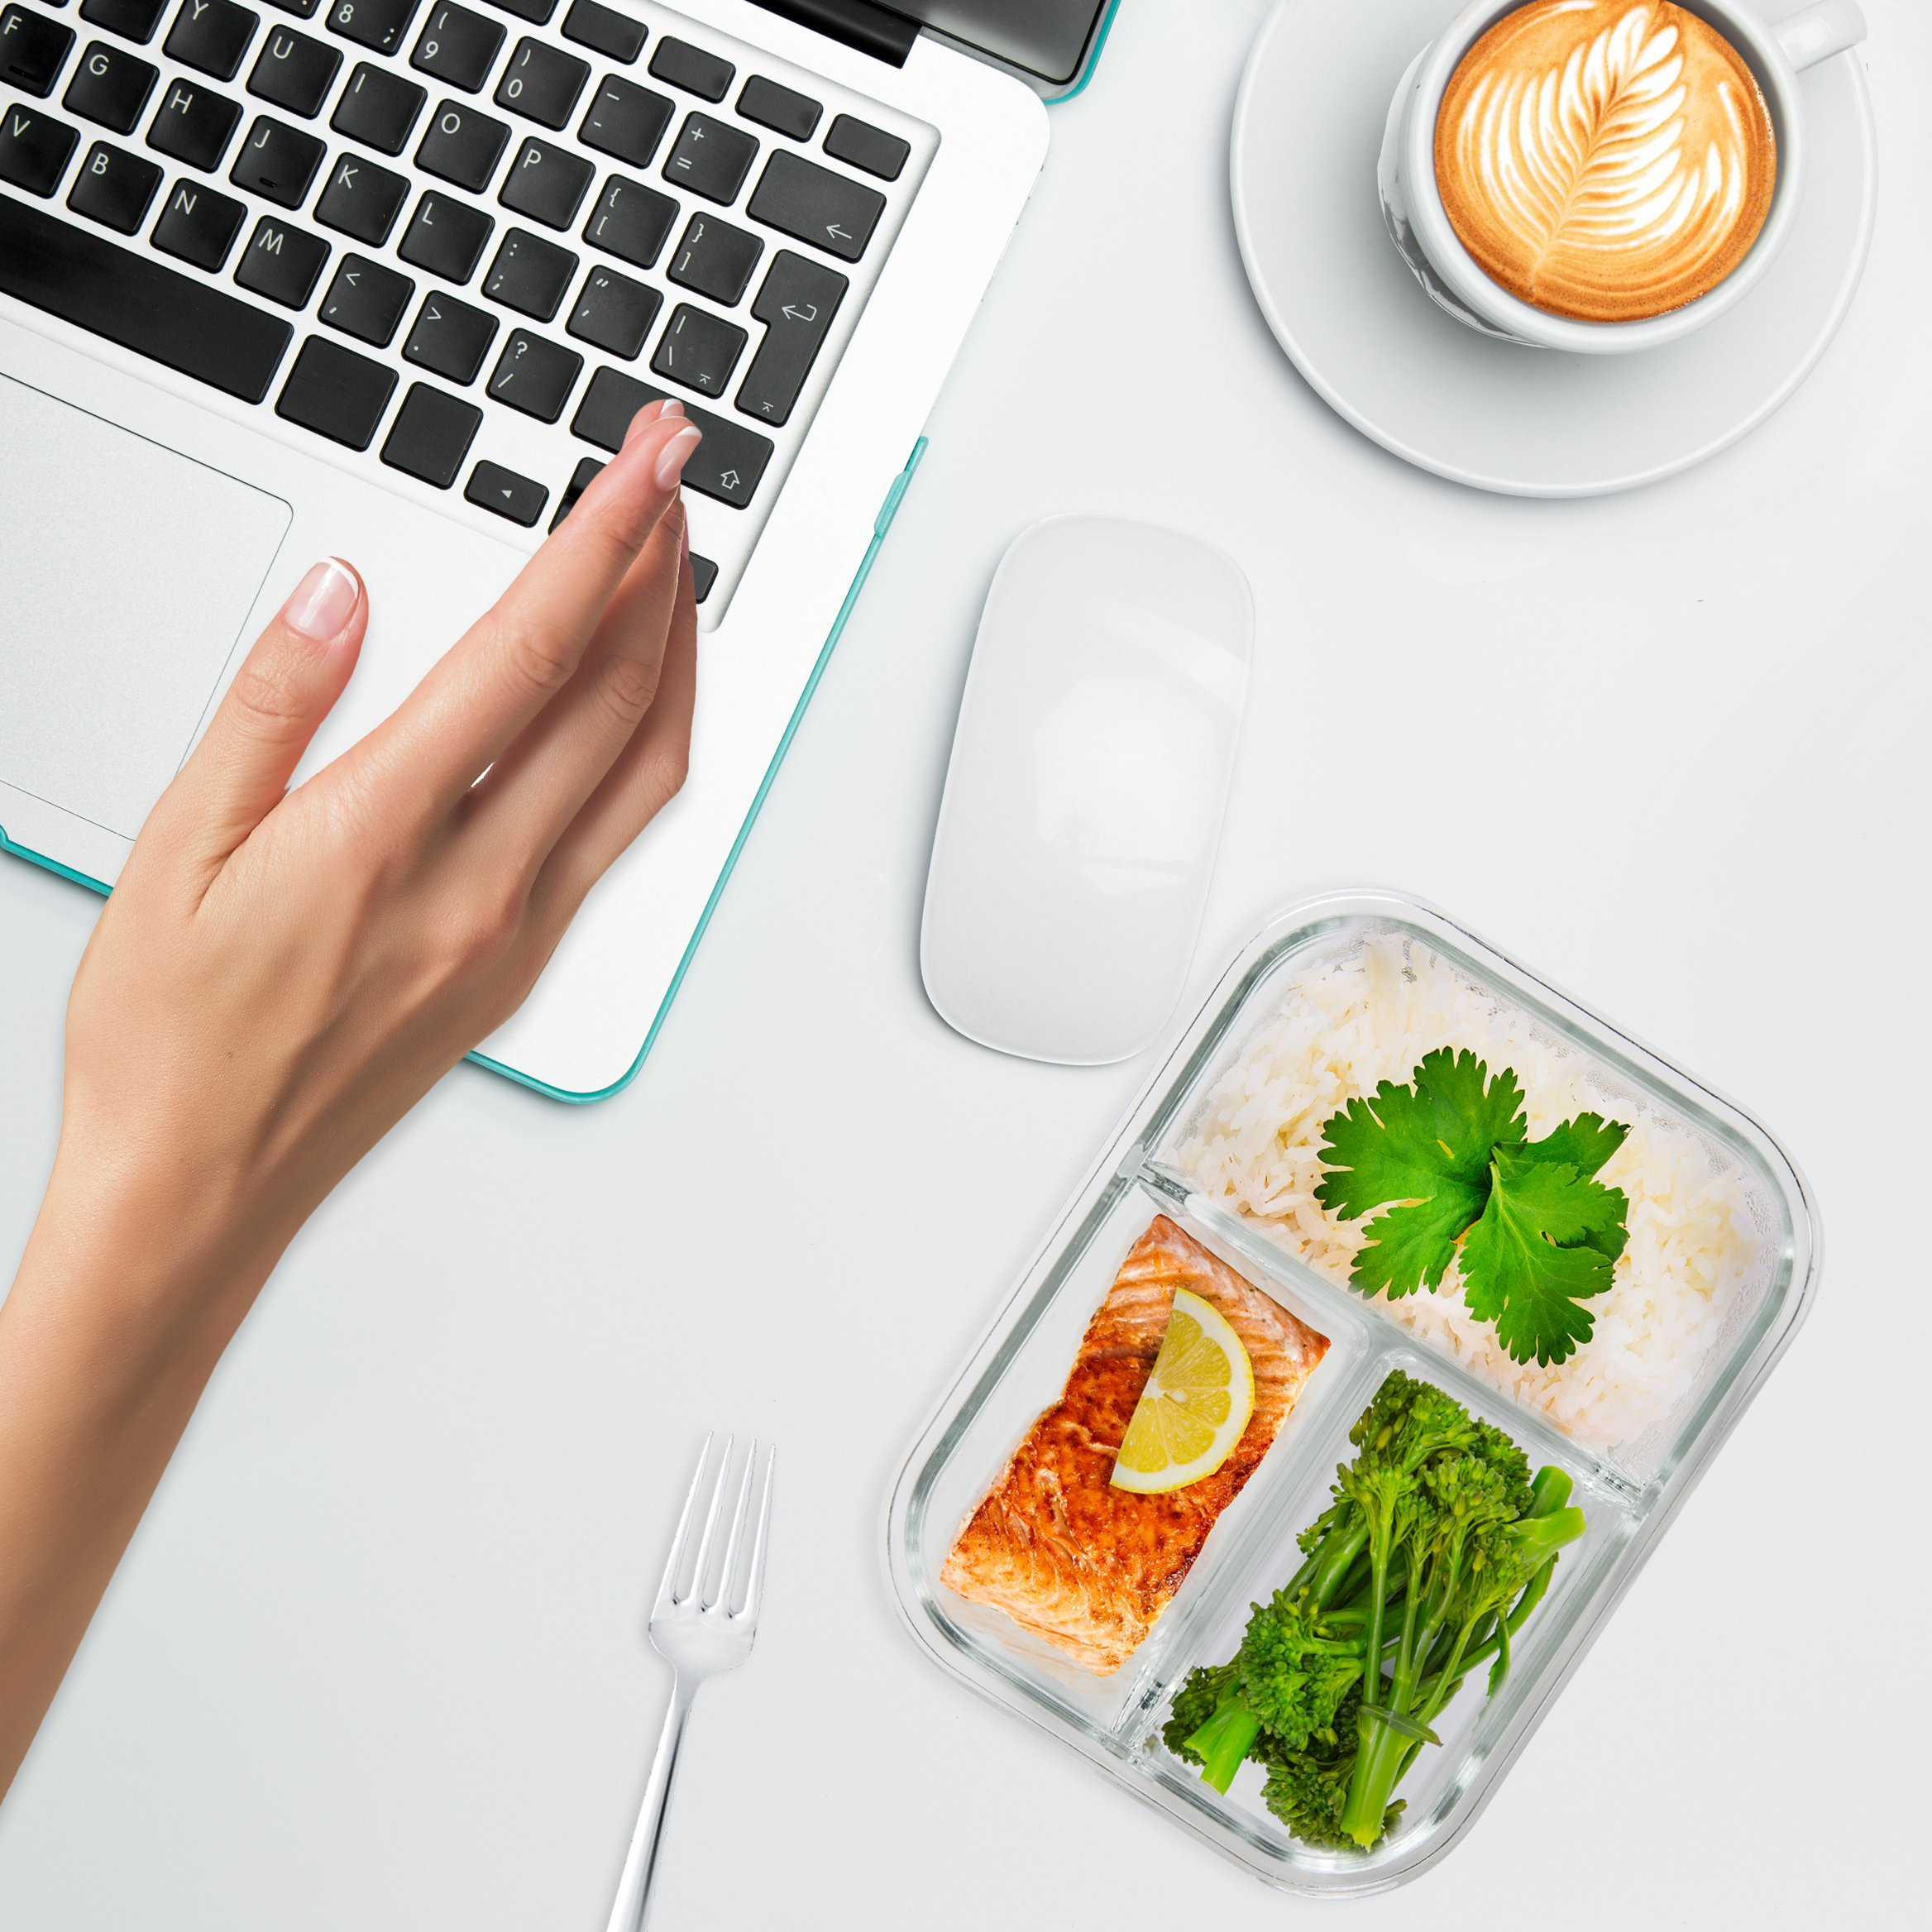 [5-Pack] Glass Meal Prep Containers 3 Compartment - Bento Box Containers Glass Food Storage Containers with Lids - Food Prep Containers Glass Storage Containers with lids Lunch Containers by Prep Naturals (Image #9)